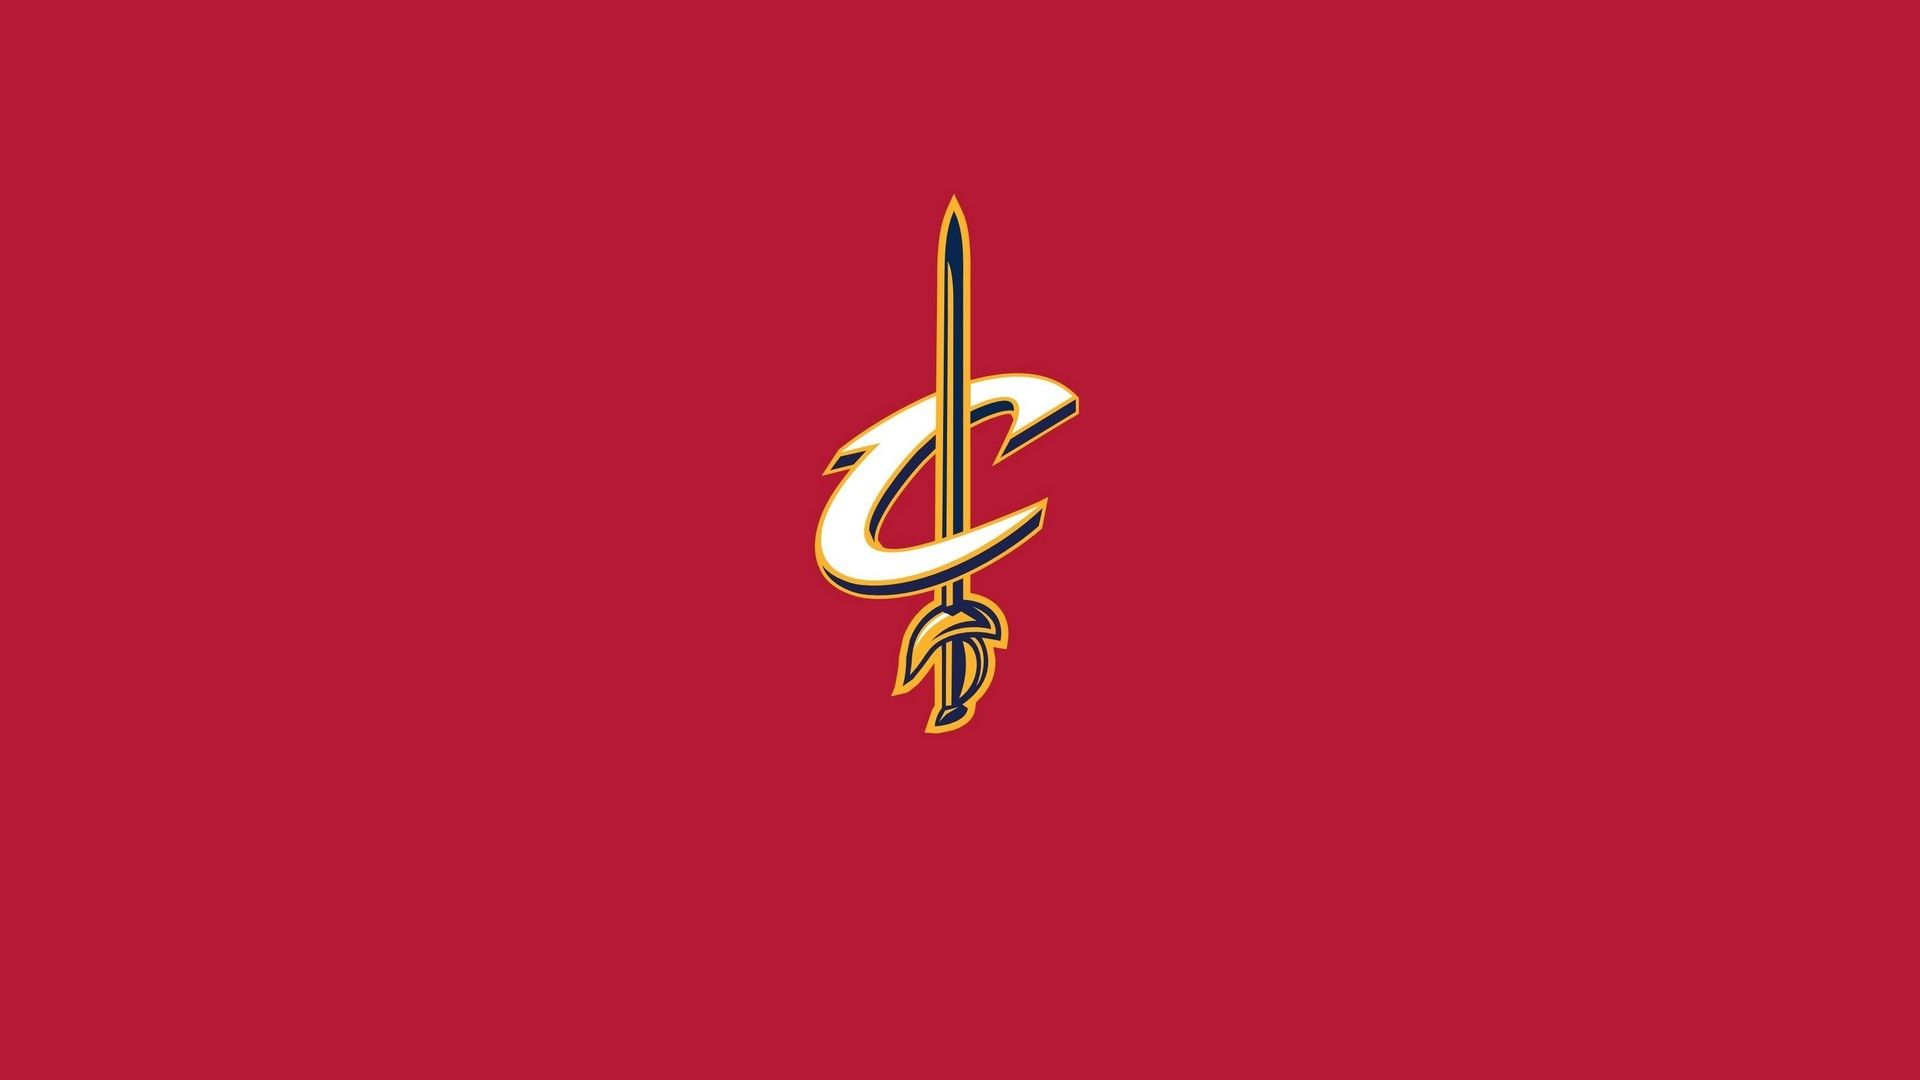 Cleveland Cavaliers For Desktop Wallpaper